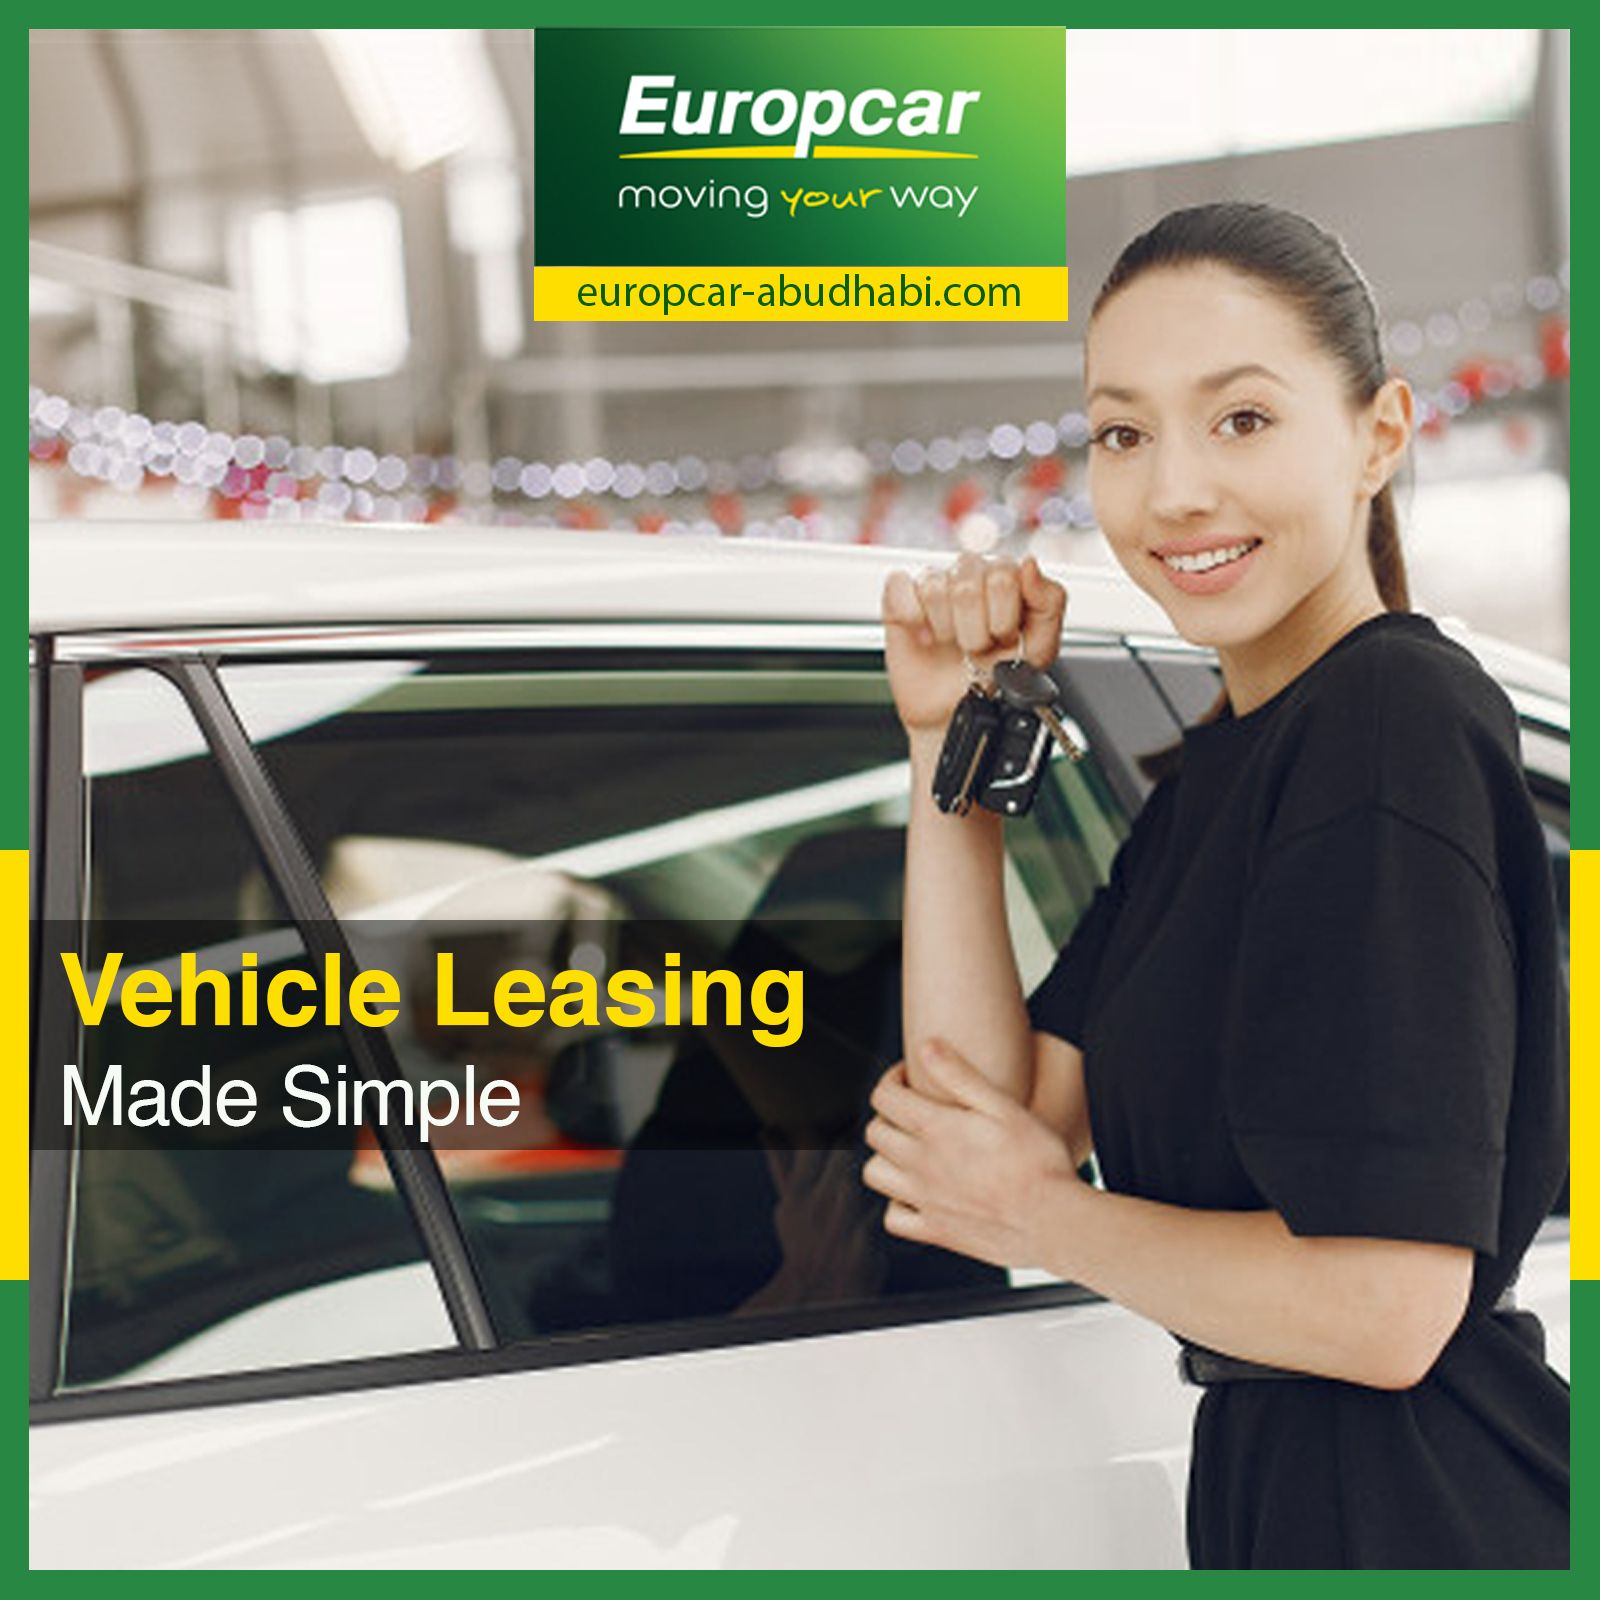 At Europcar Abu Dhabi we have a dedicated Car Lease division, who can help answer your questions on both personal and corporate car leasing. With a full range of leasing options on almost all cars currently in the market, Europcar Abu Dhabi provides great cost and choice when looking to lease a car. Call us now : 026261441 Ext 24, 25 Visit our website: www.europcar-abudhabi.com #europcar #movingyourway #abudhabi #carleasing #carrental #rentacar